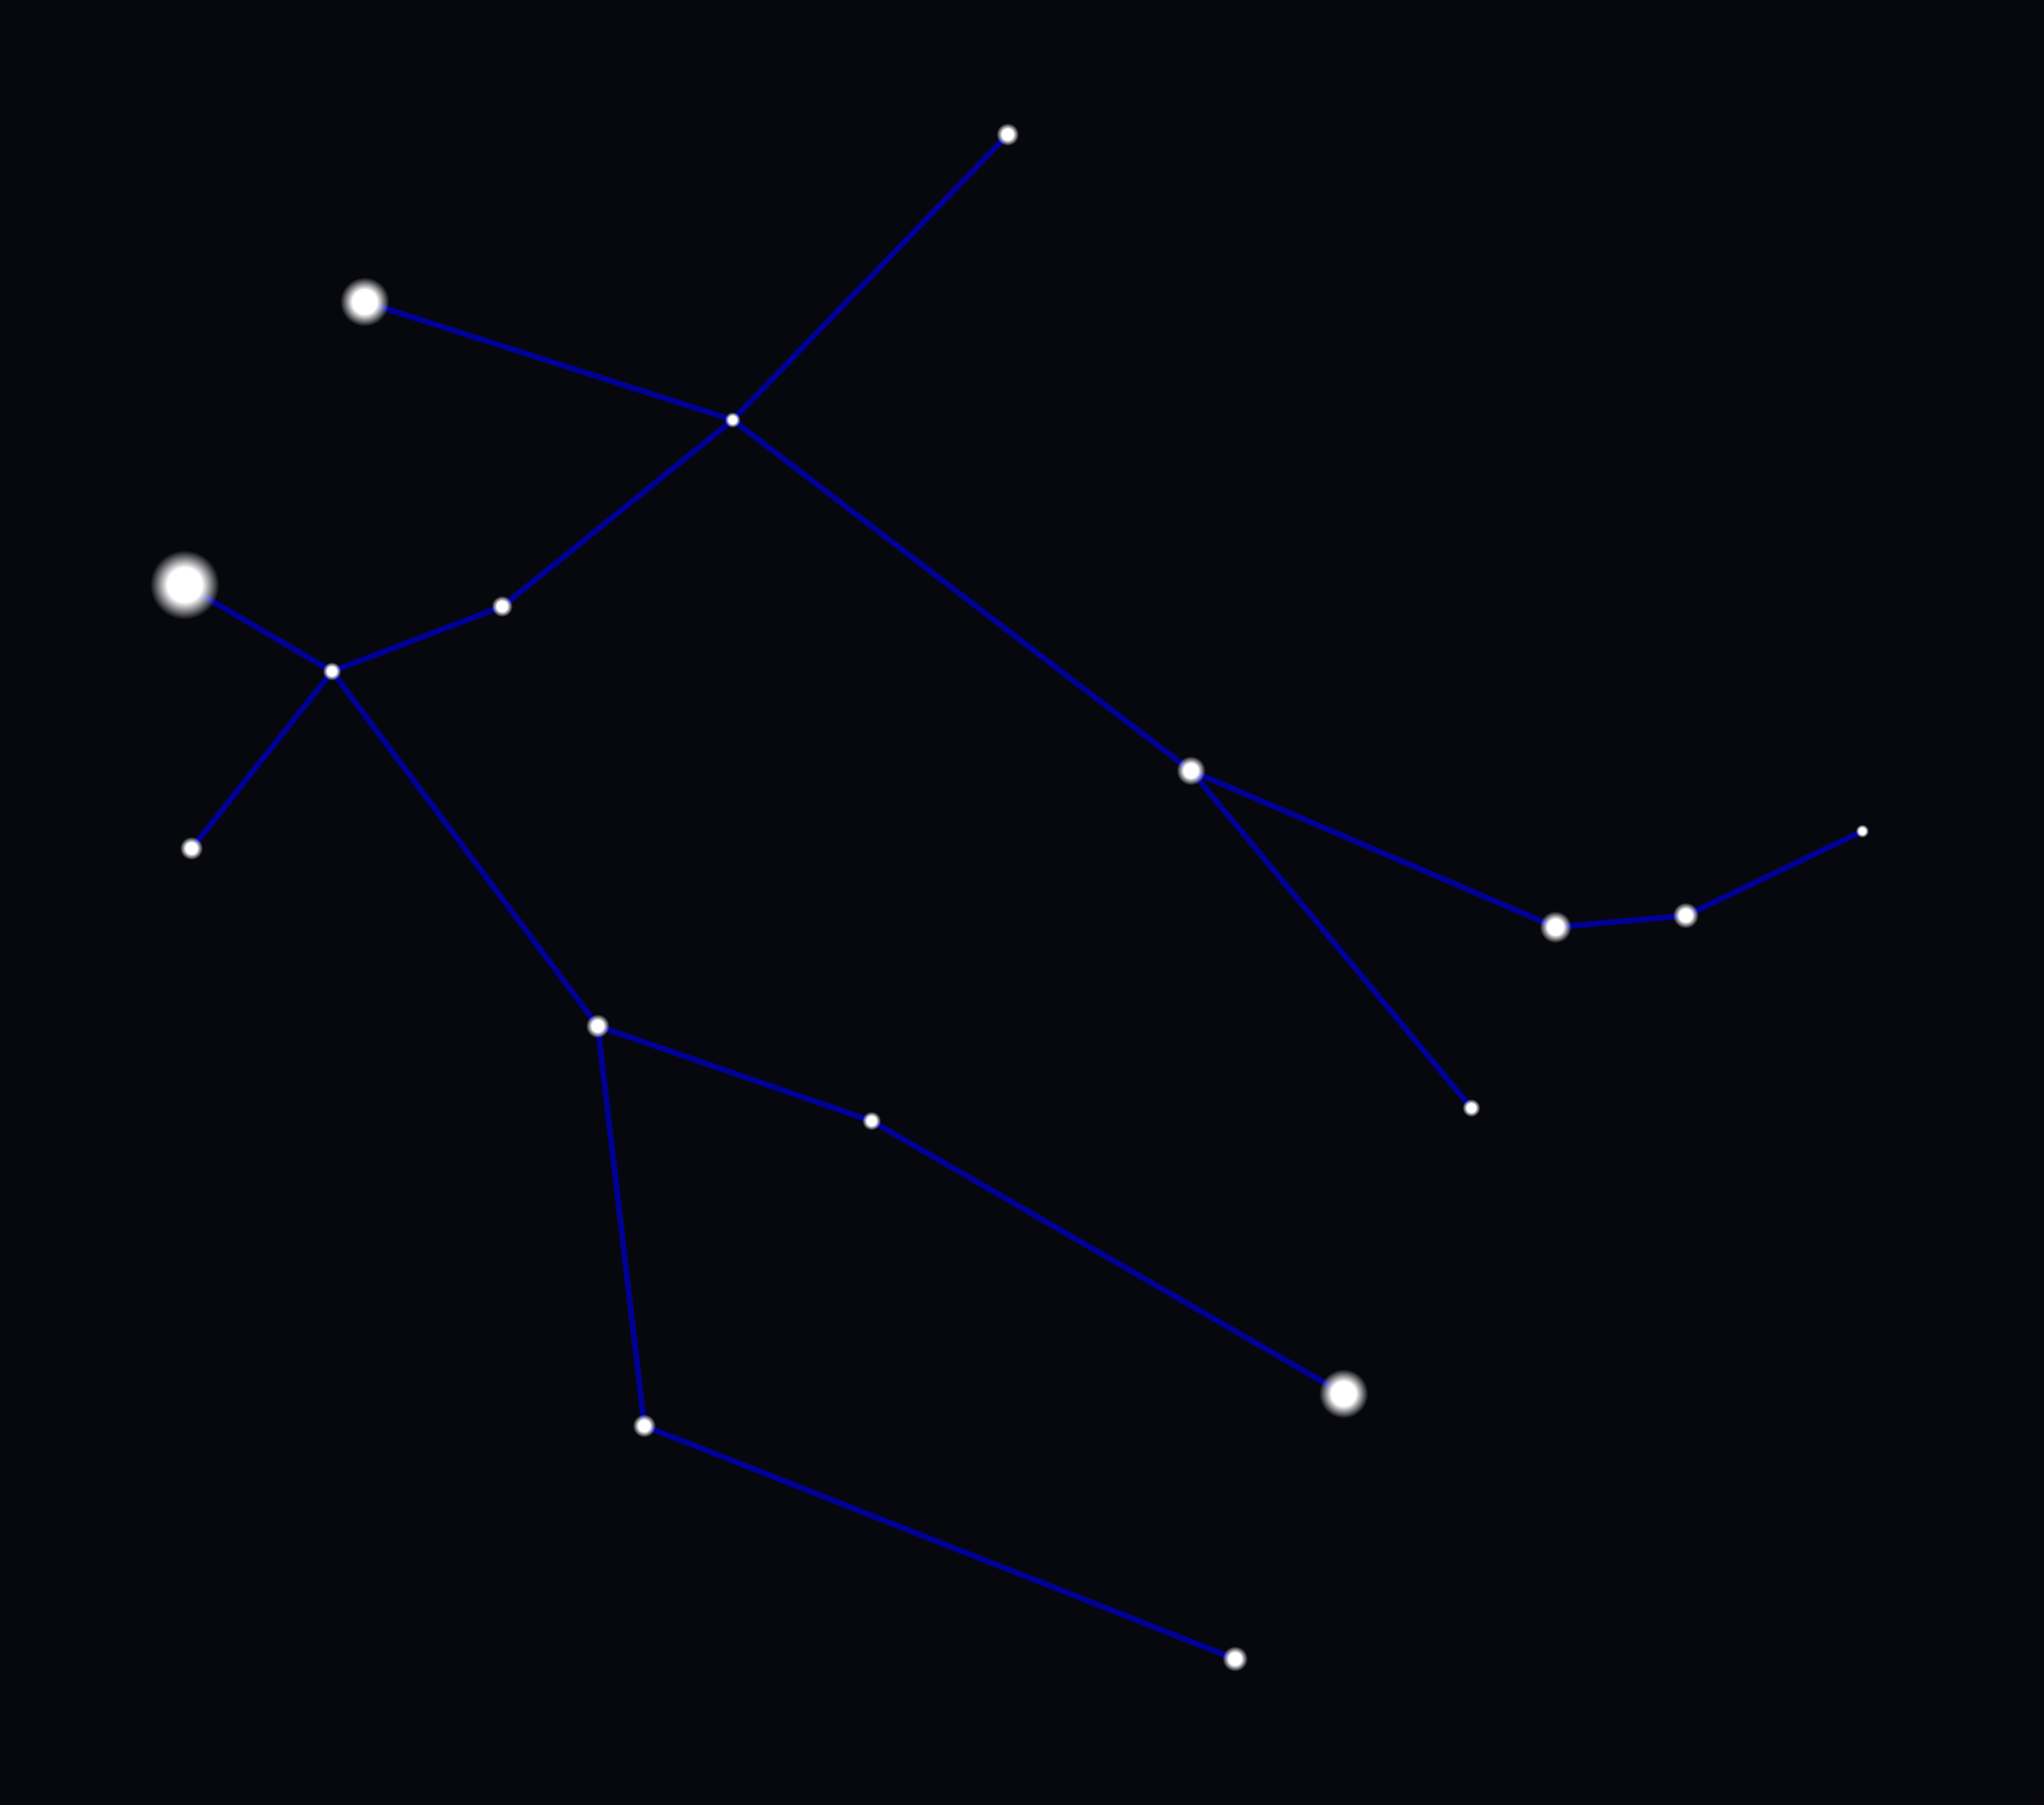 Gemini constellation by Firkin